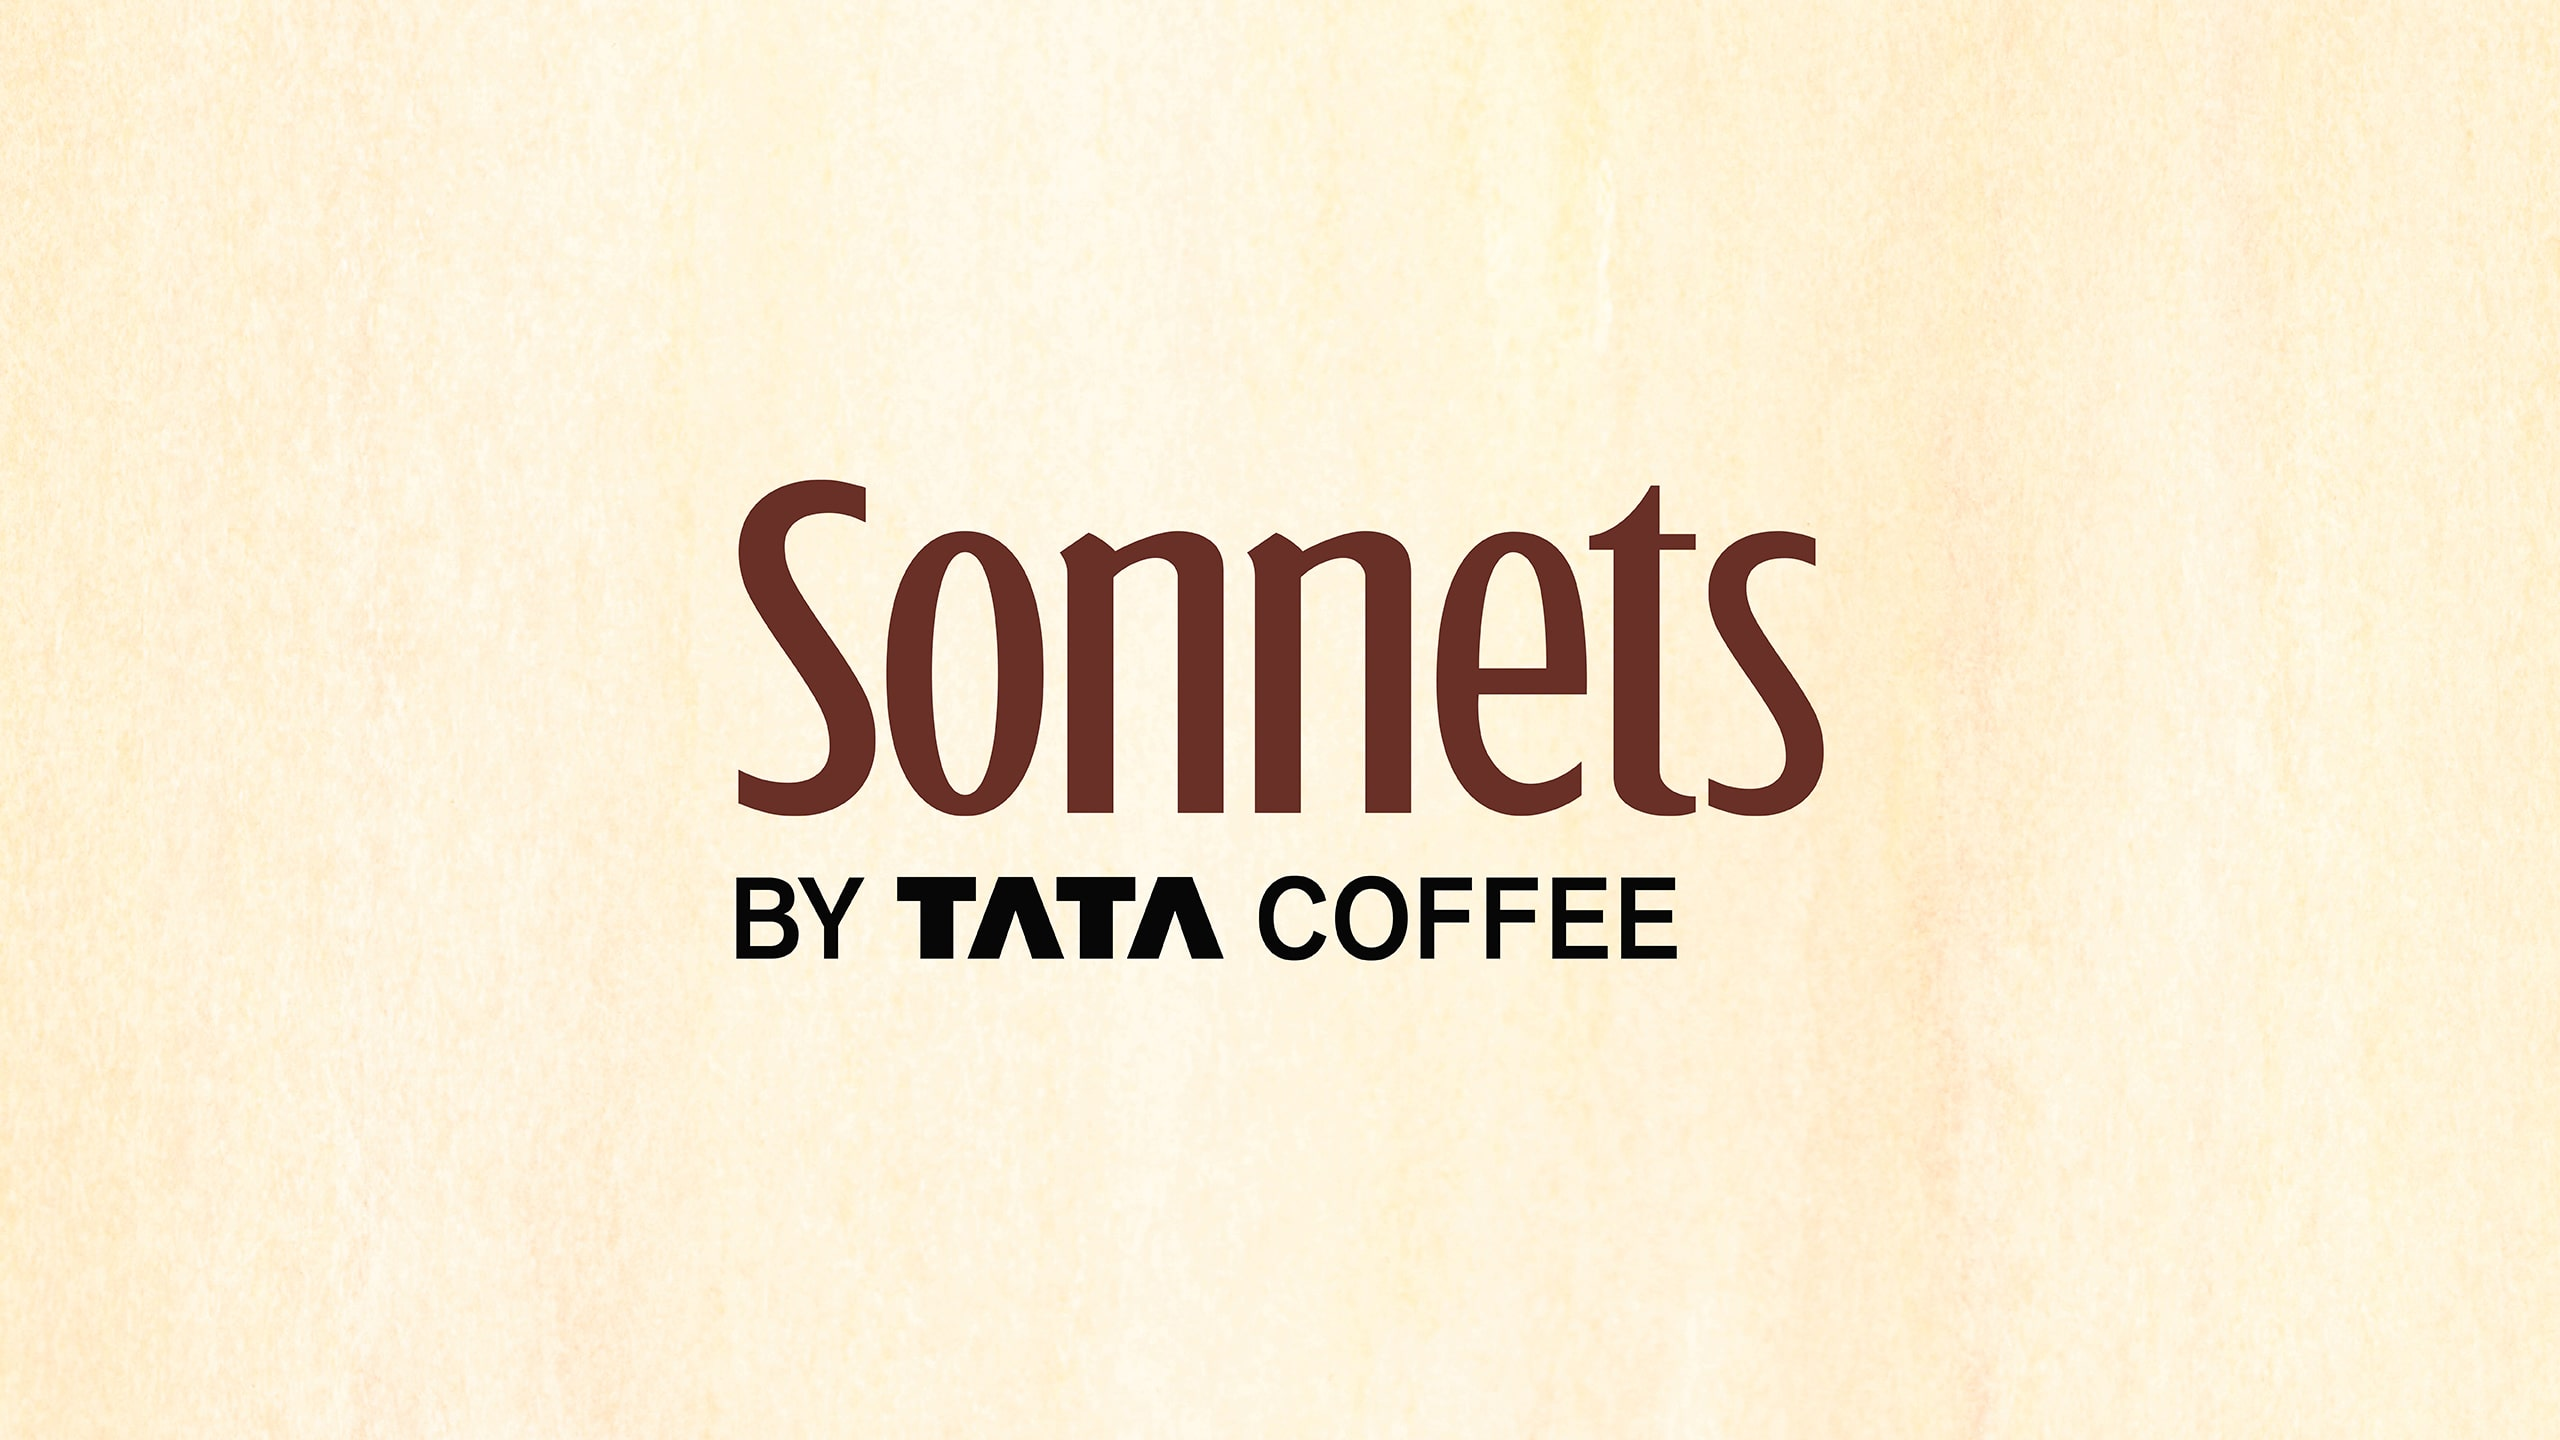 Sonnets by Tata Coffee2